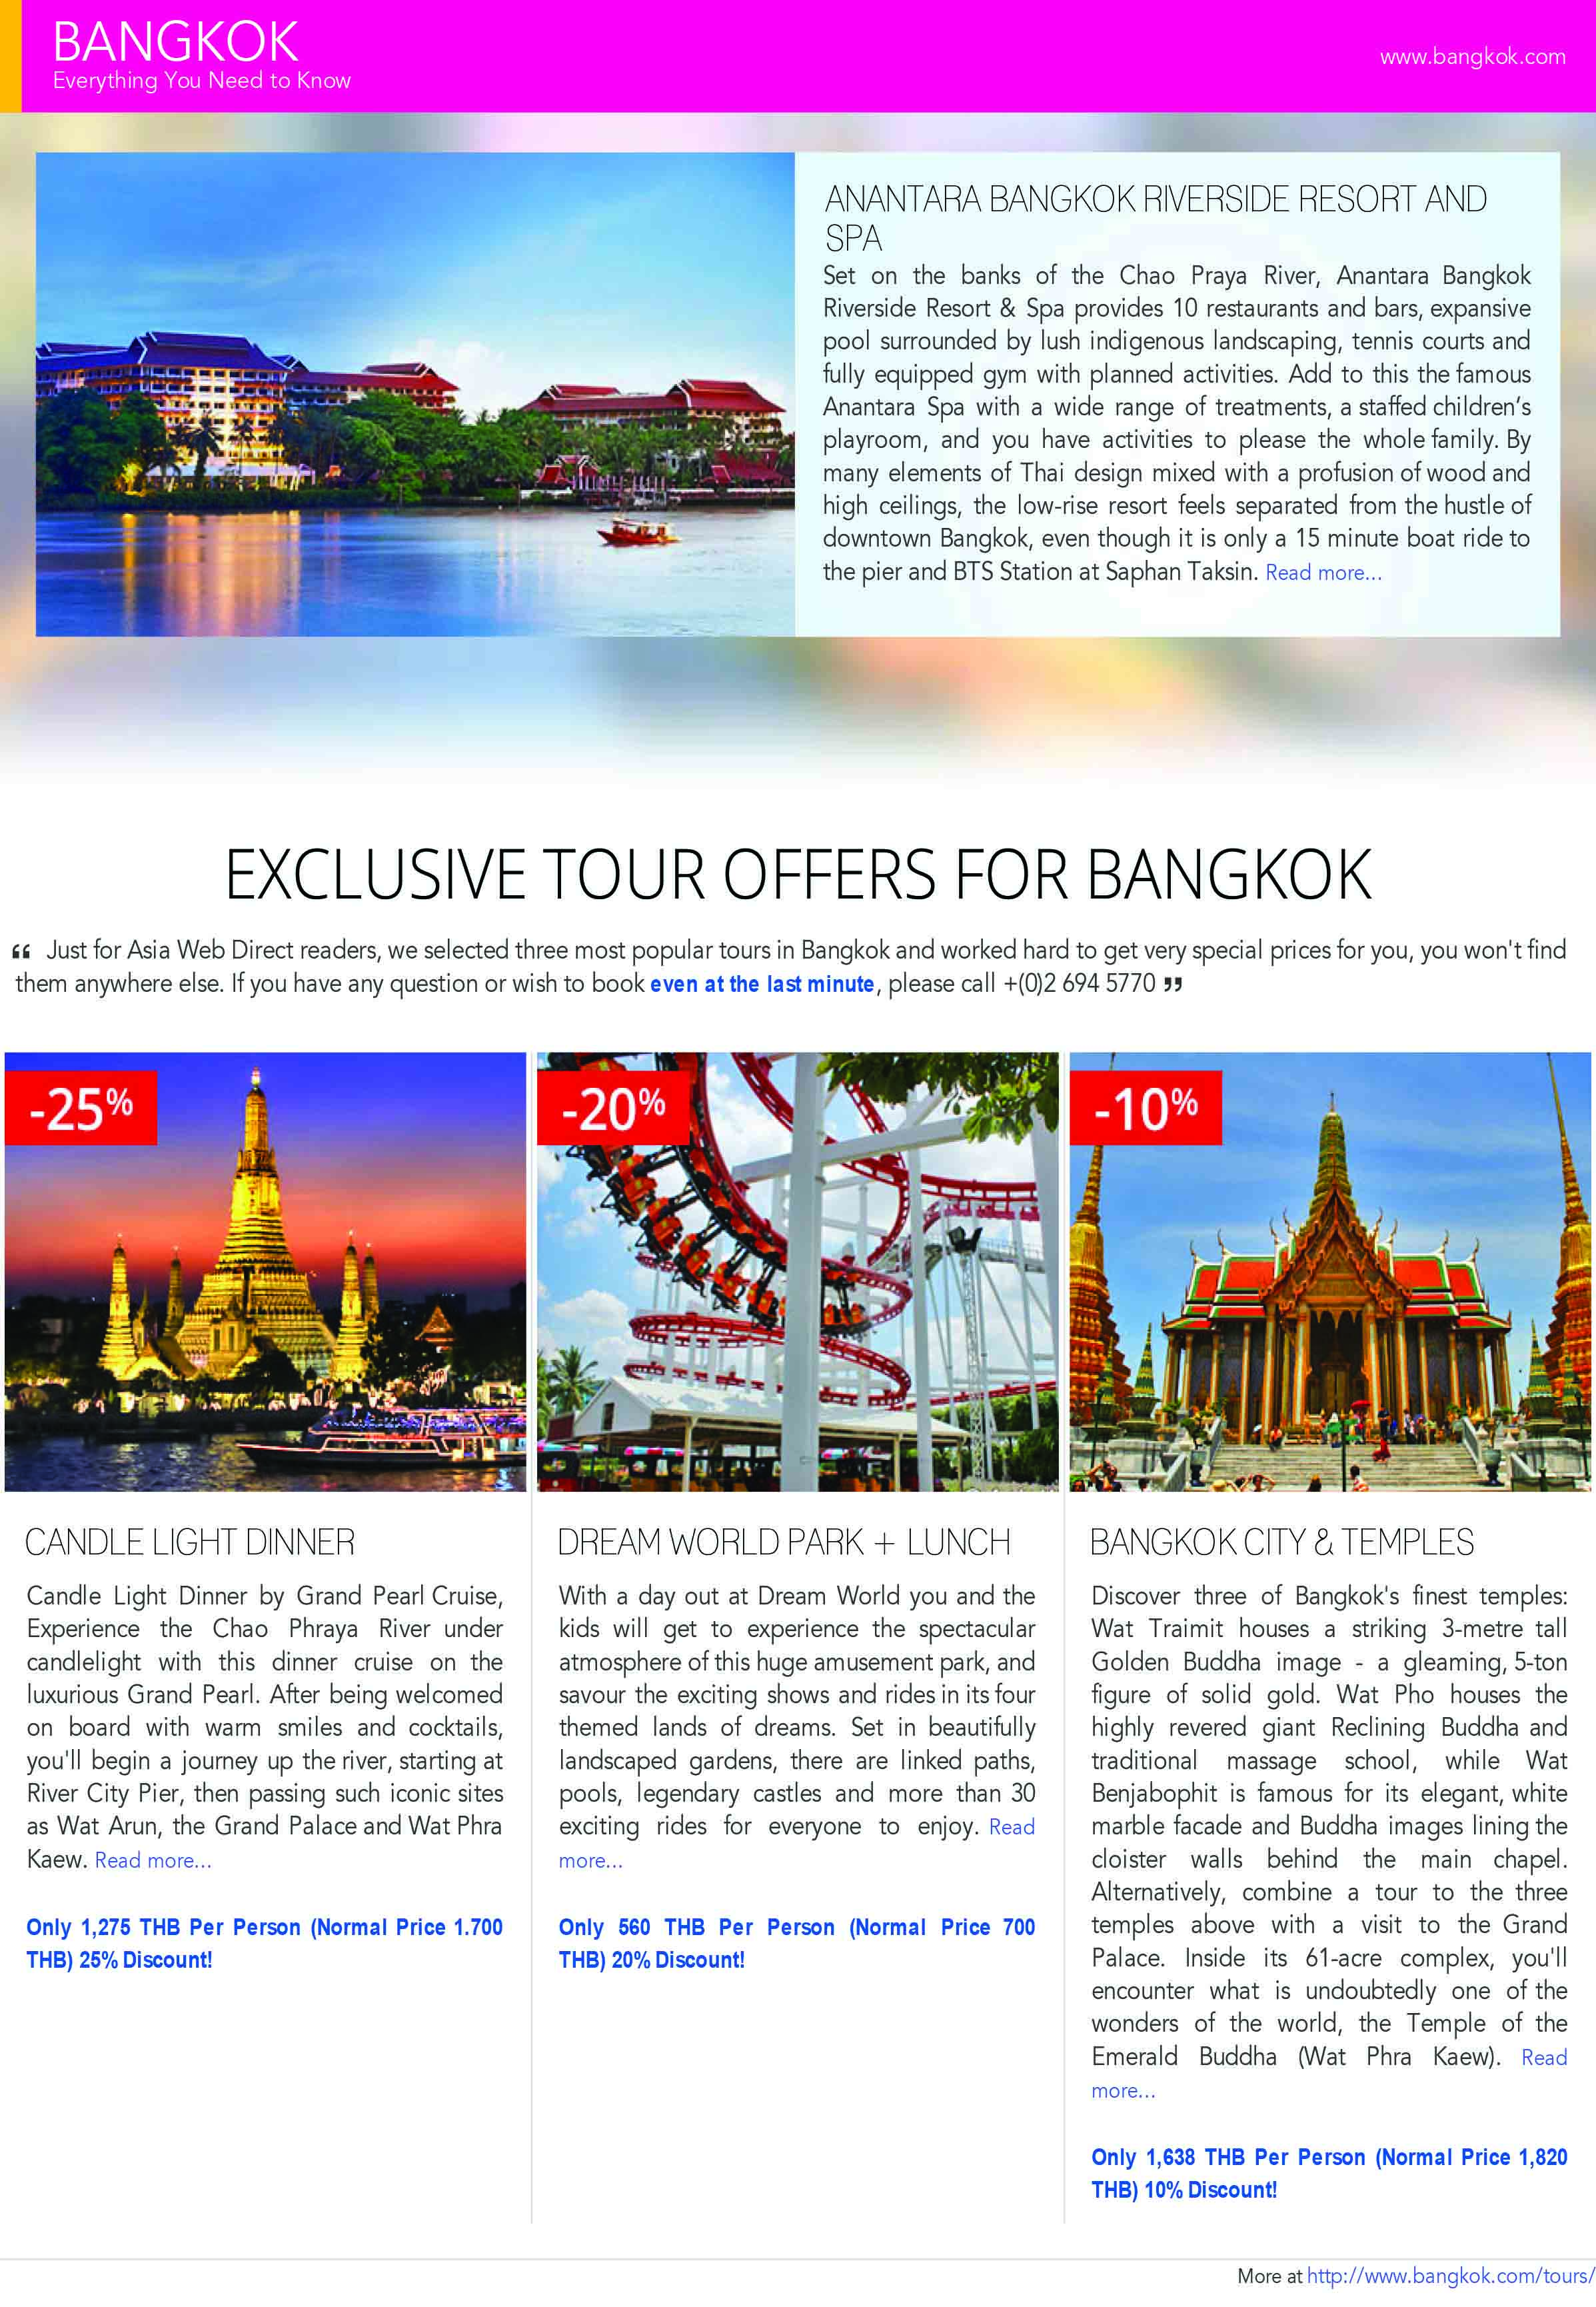 Exclusive Tour Offers For Bangkok